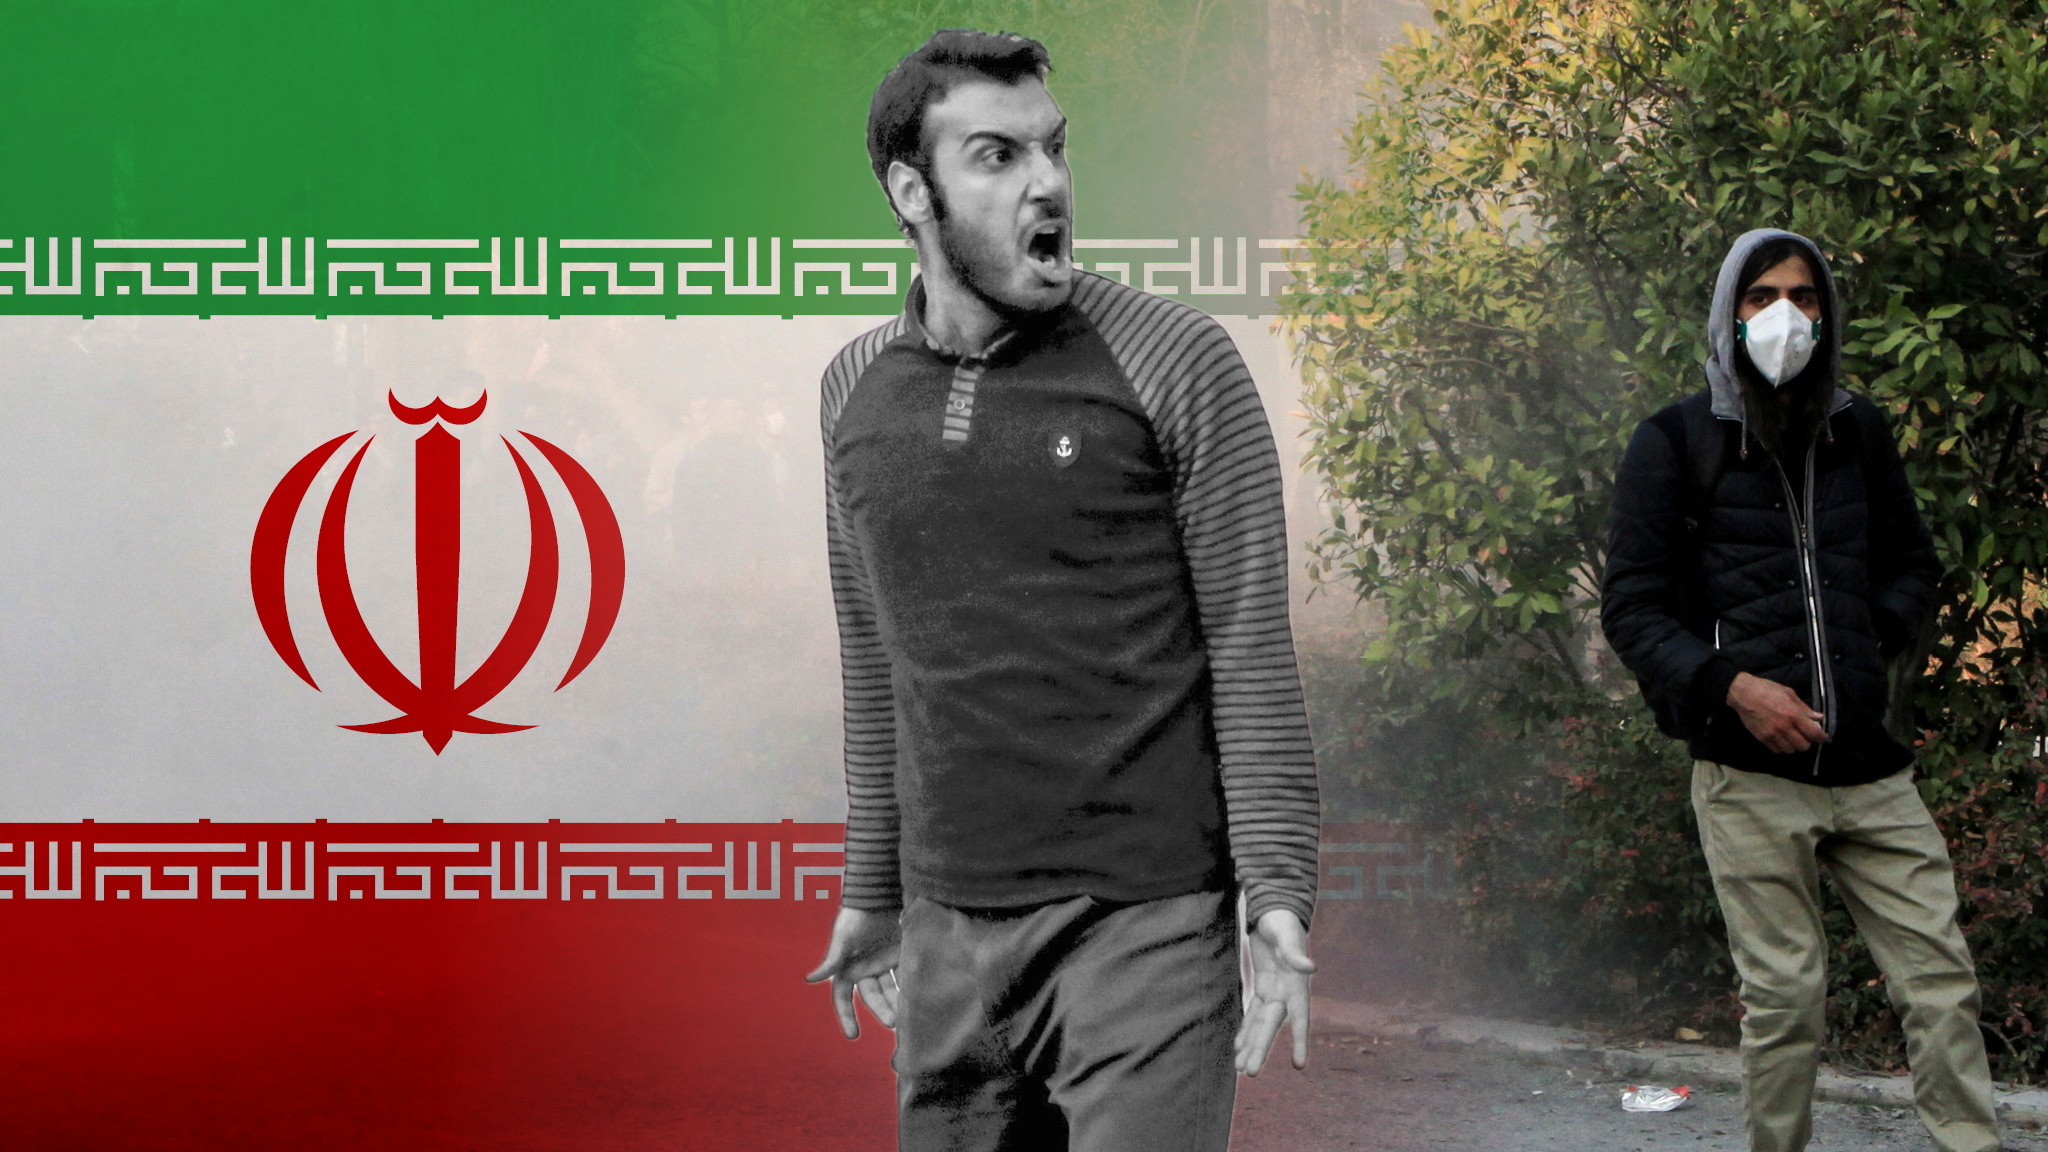 Growing dissent adds to Iranian regime's troubles